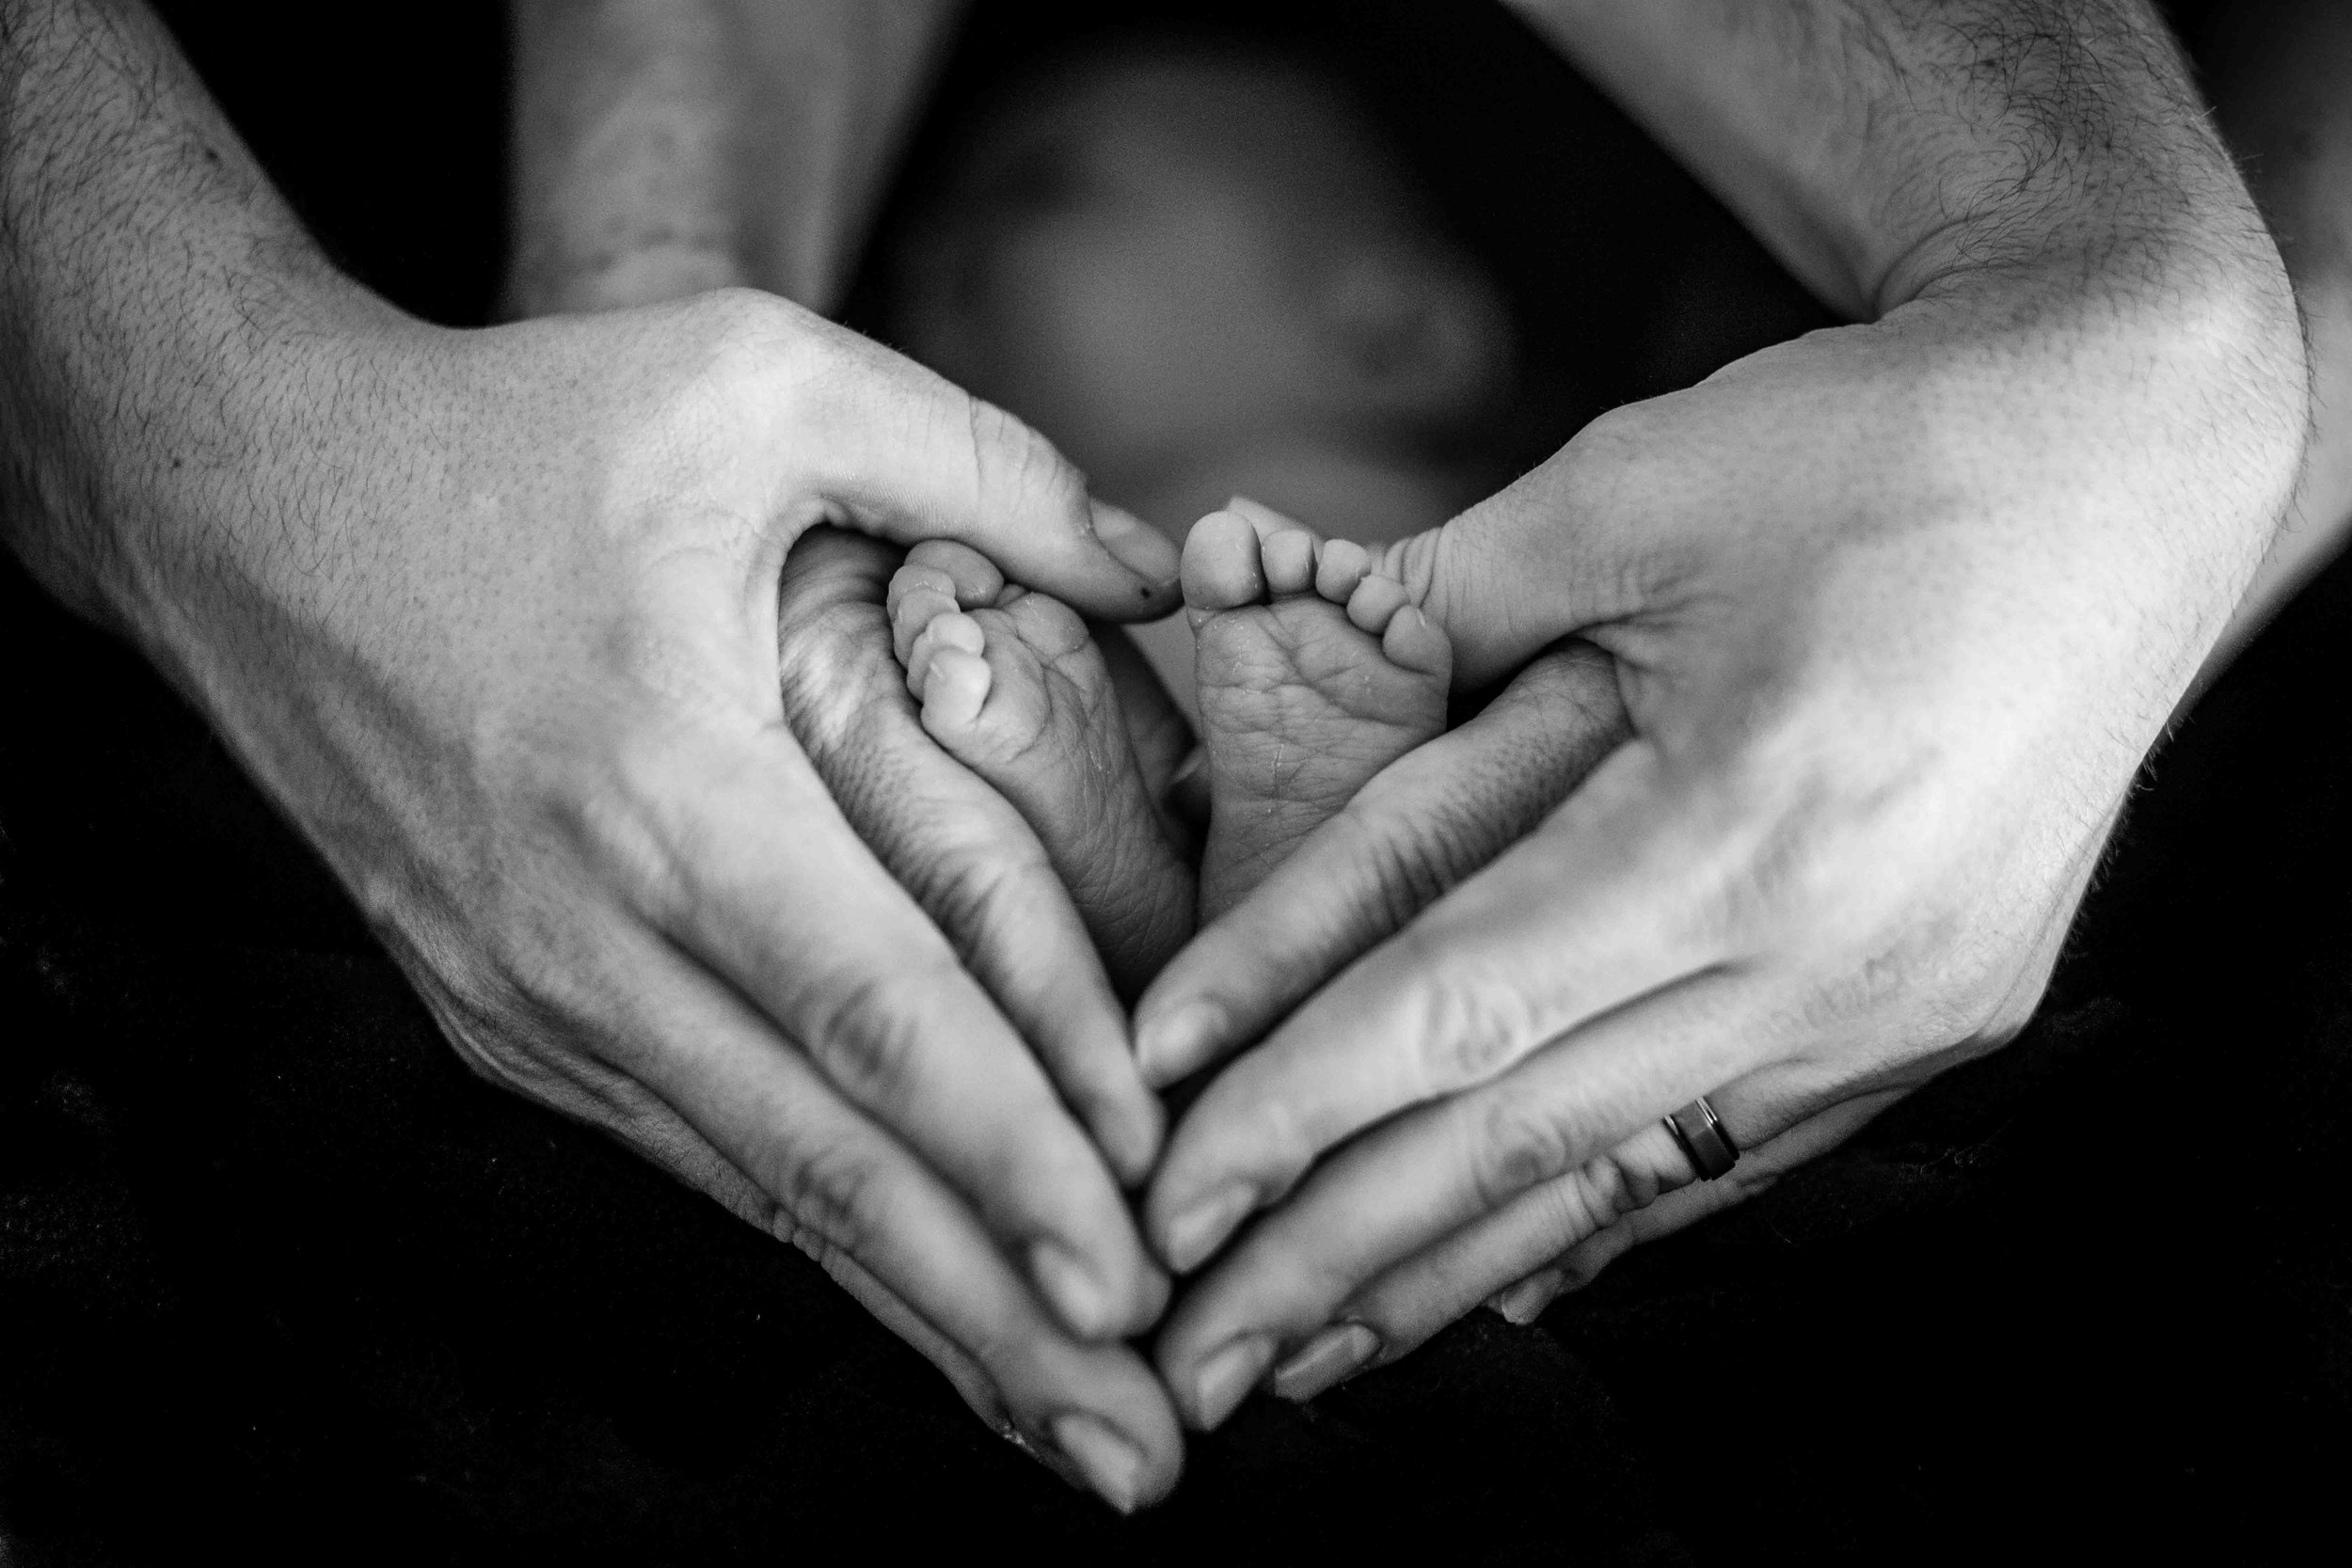 mother and father make a heart shape with their hands and baby's feet